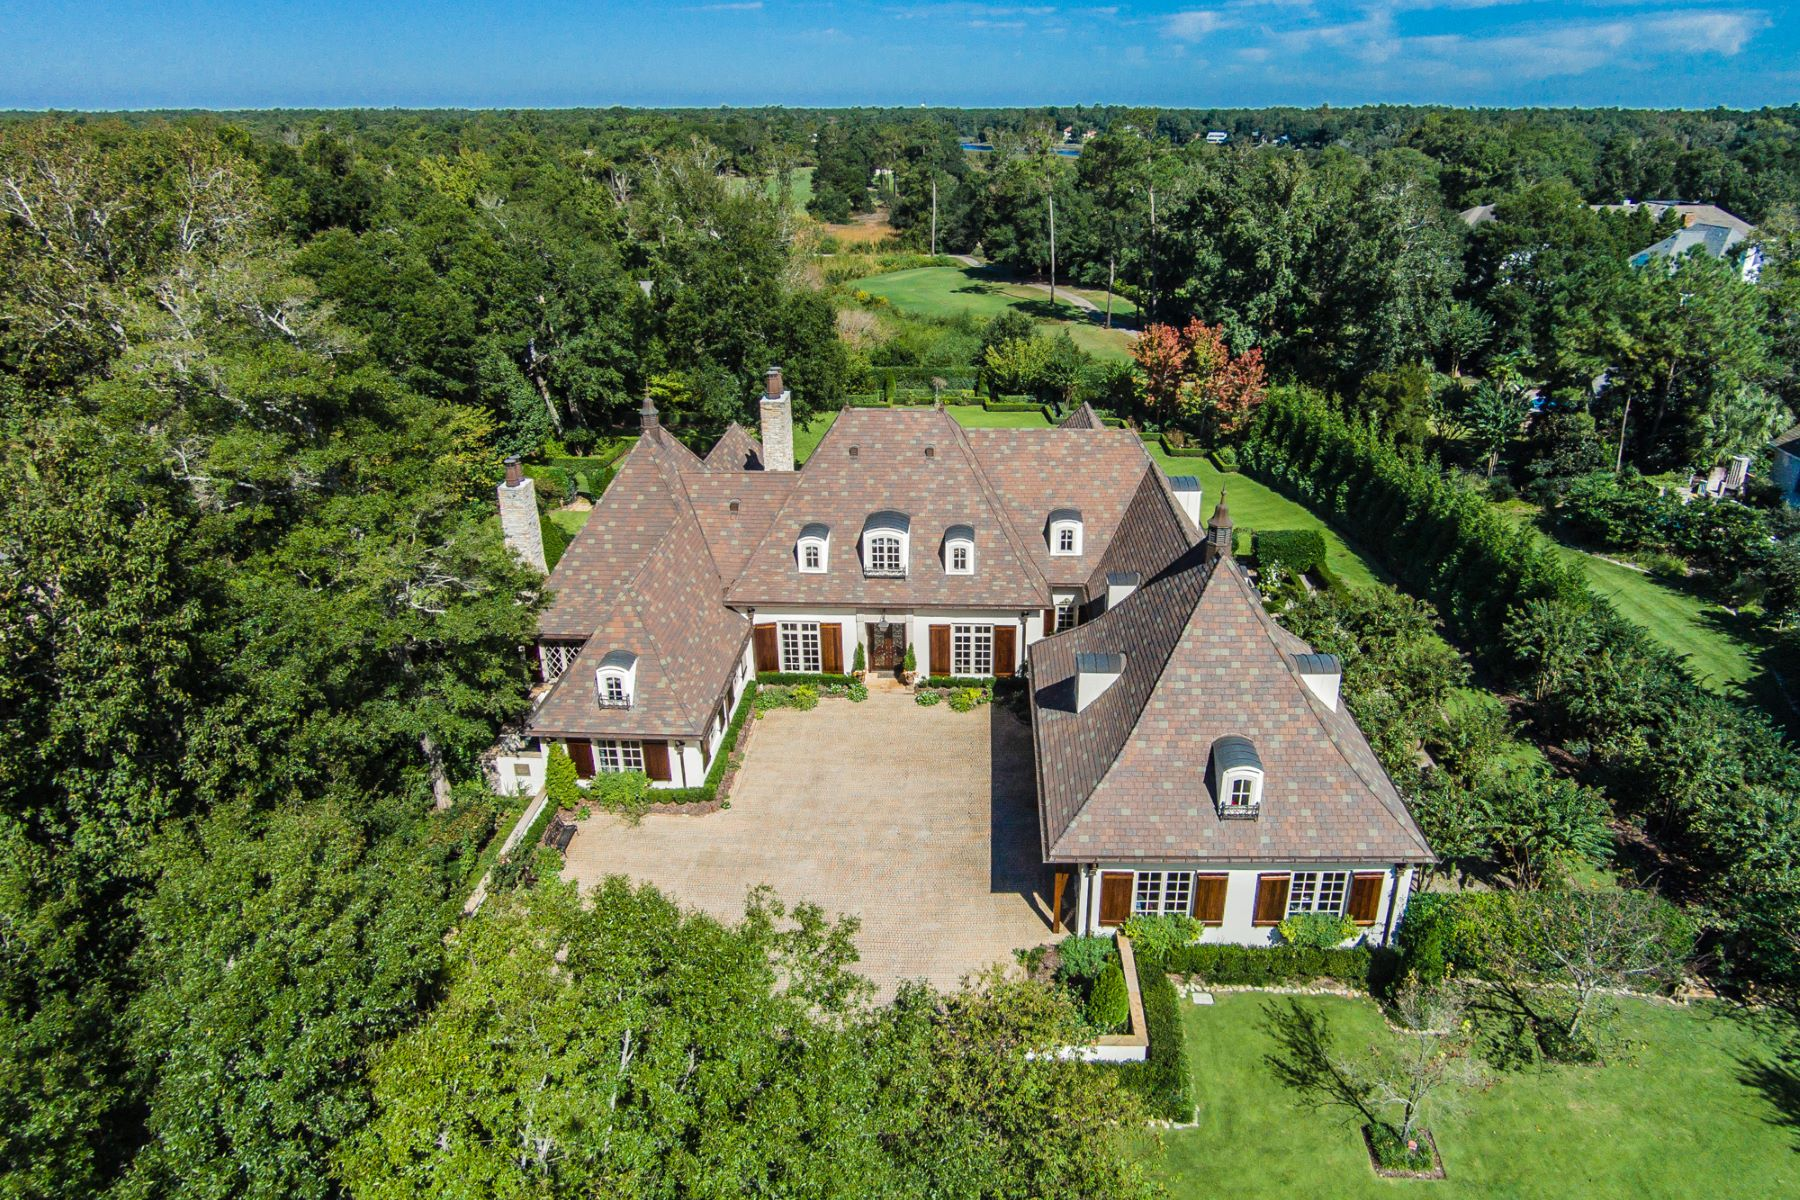 Single Family Homes for Sale at Refined Living with Classic Elegance 2305 Ocean Point Drive Wilmington, North Carolina 28405 United States